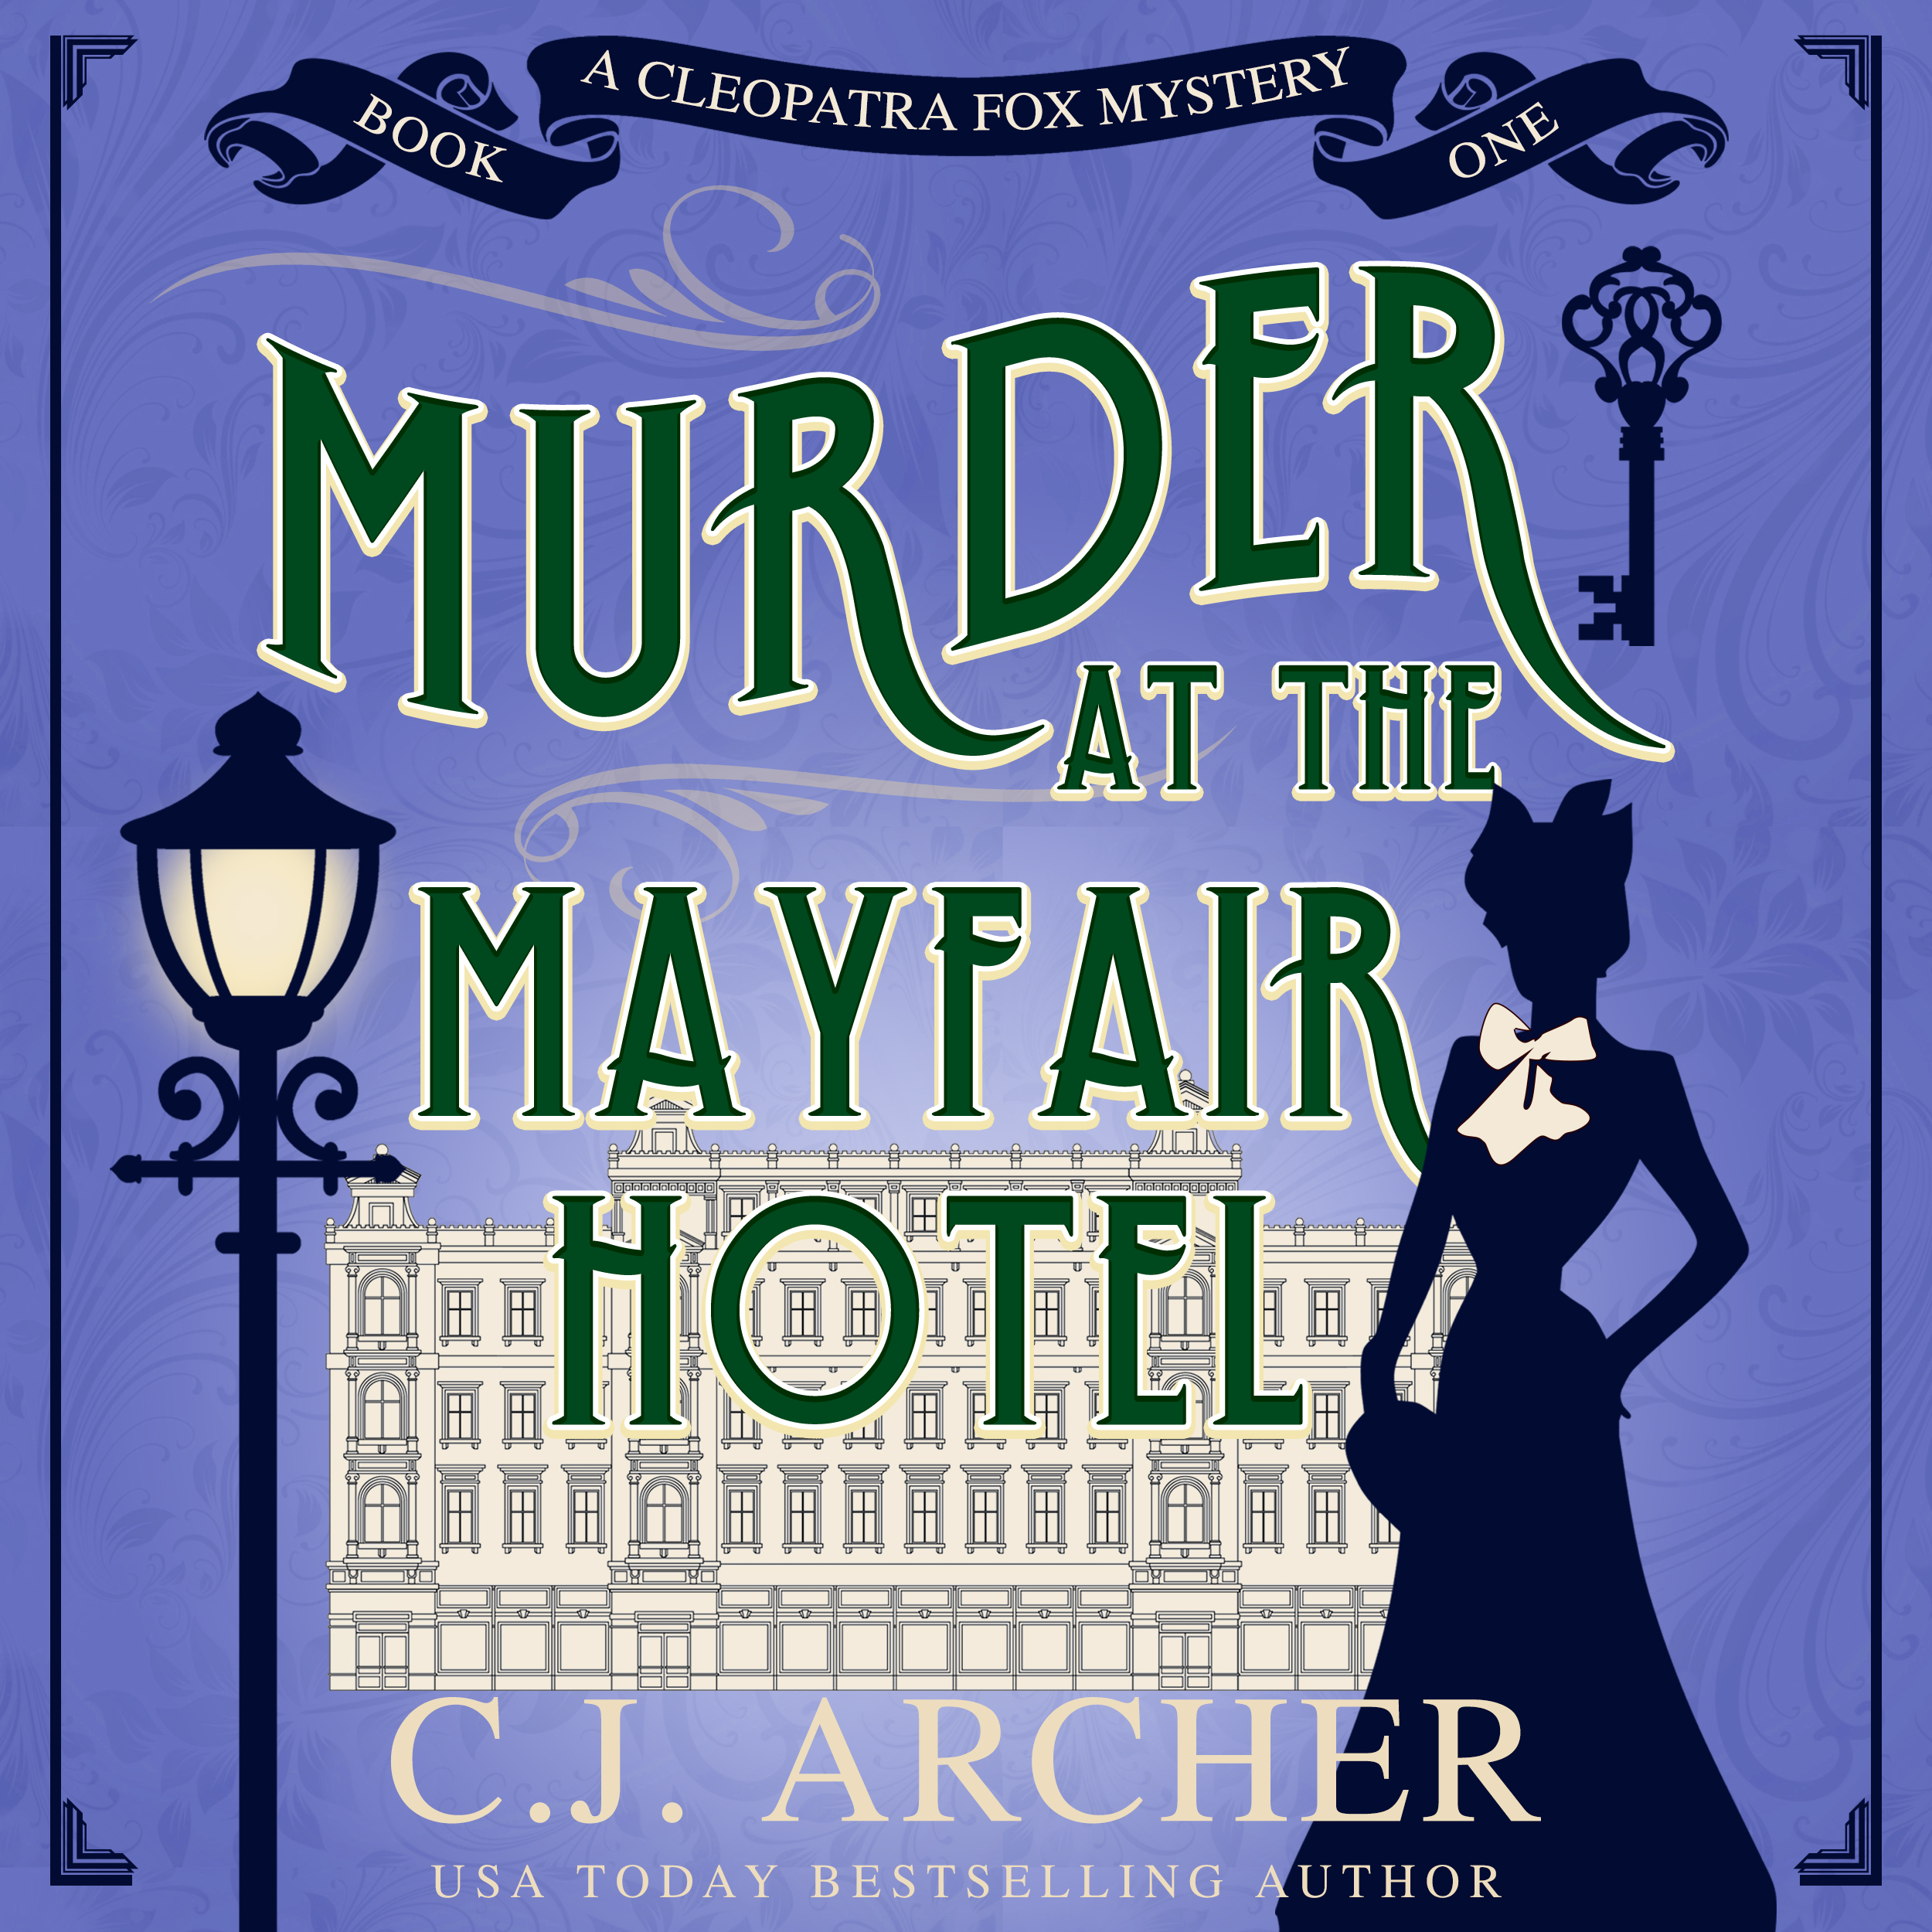 Murder at the Mayfair Hotel audiobook by CJ Archer